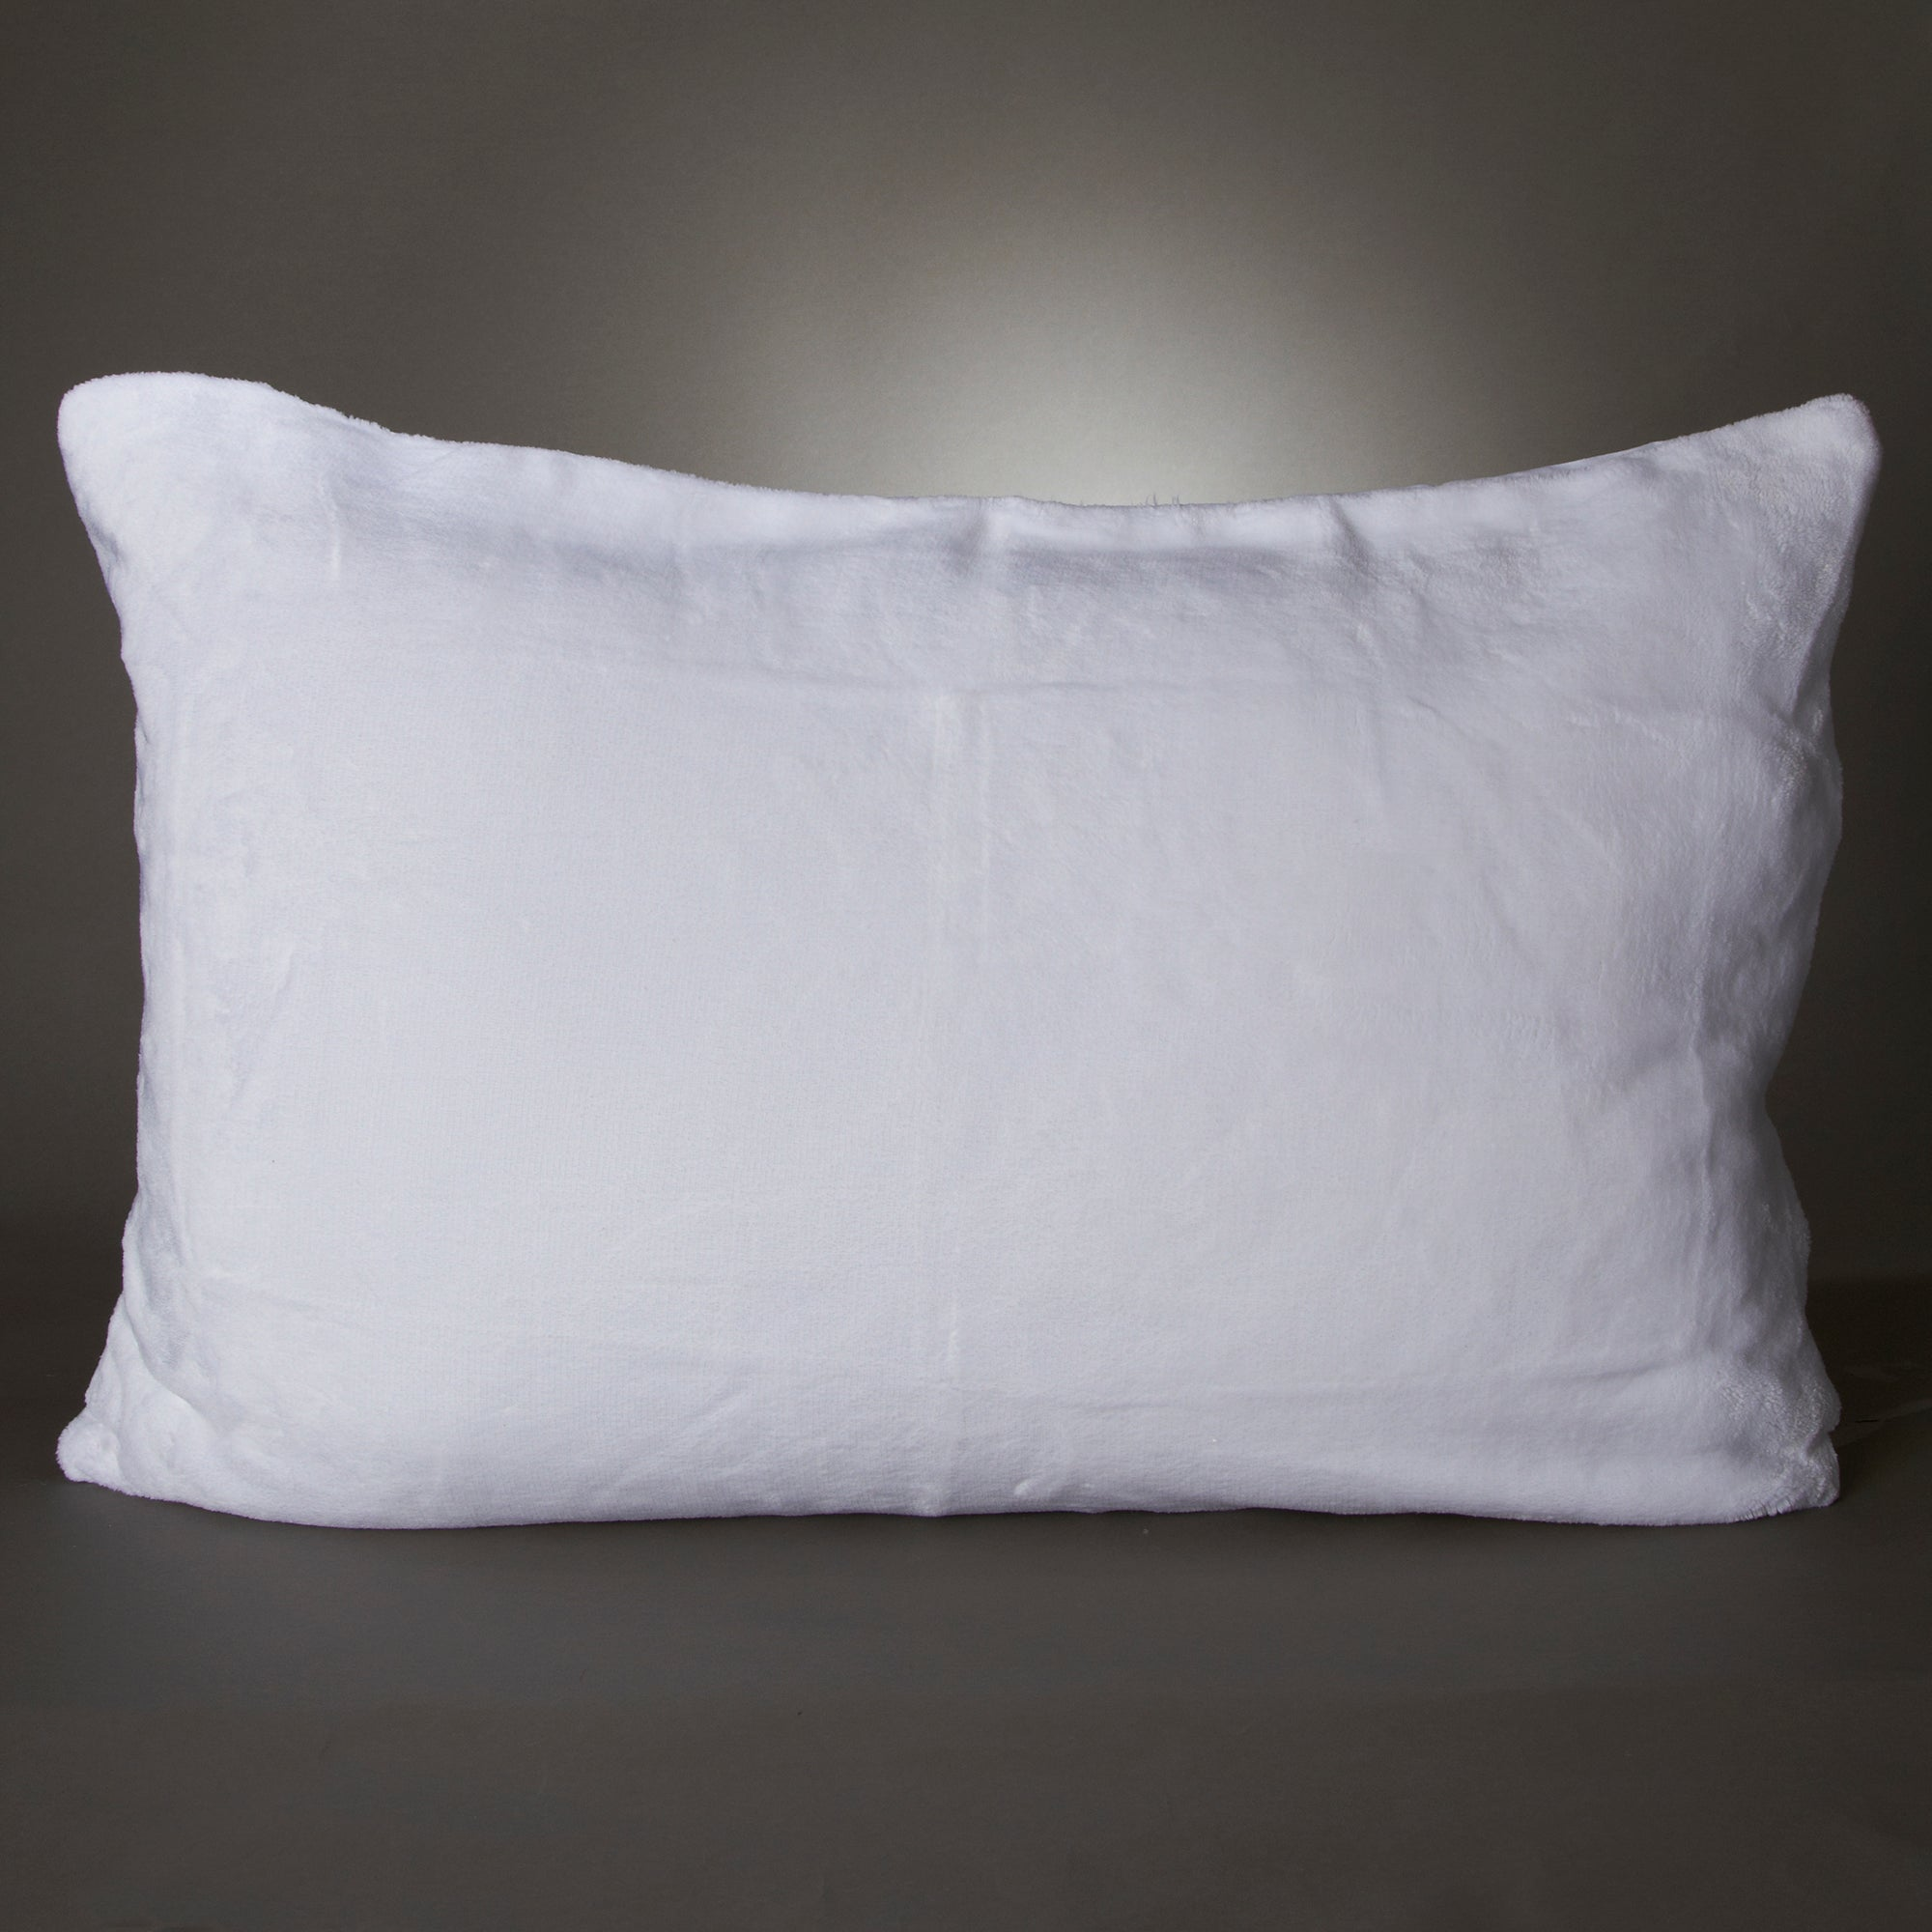 Dorma Supremely Soft Pillow Cover